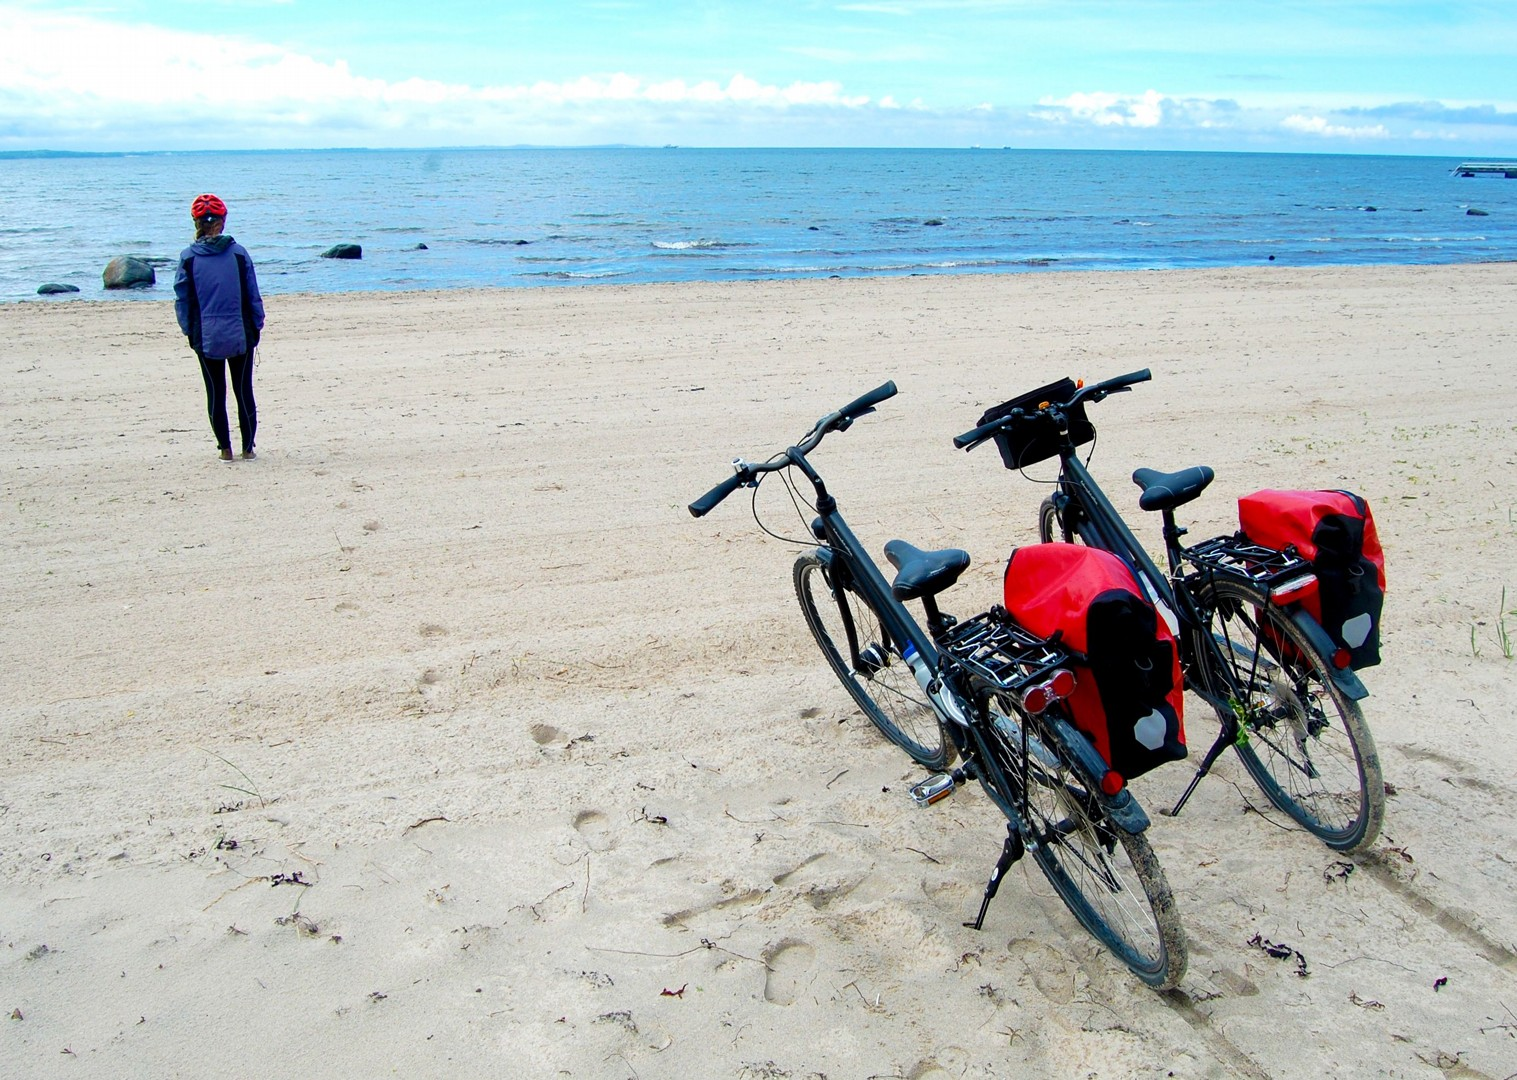 family-cycling-holiday-denmark-beach-experience.jpg - NEW! Denmark - Zooming Through Zealand - Family Cycling